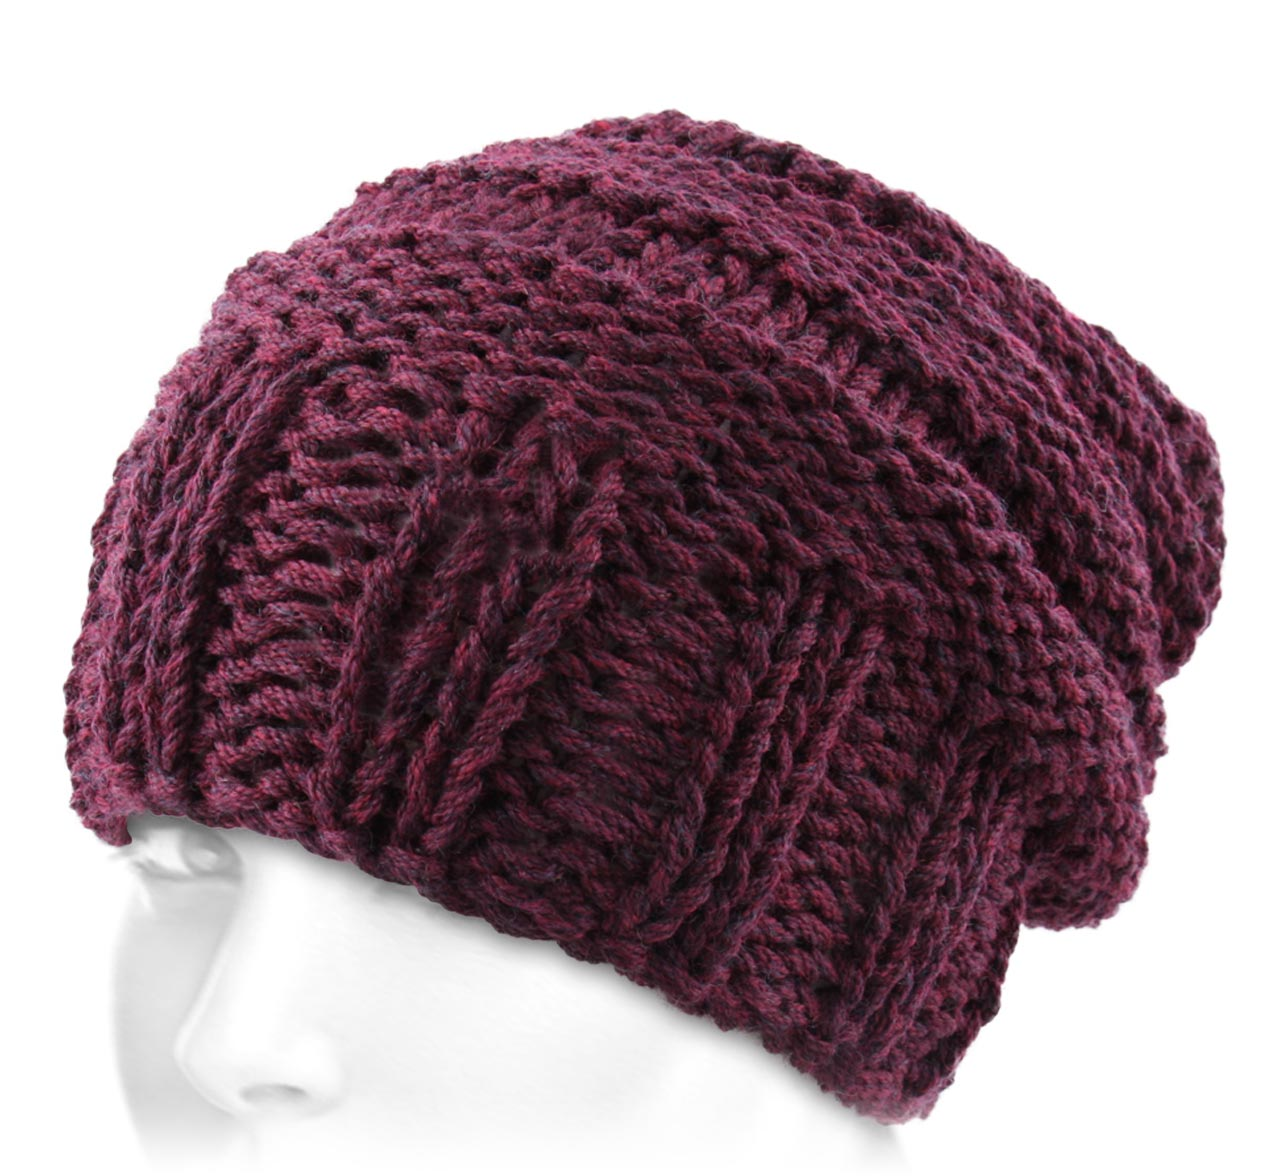 Bonnet Violet Claret mix